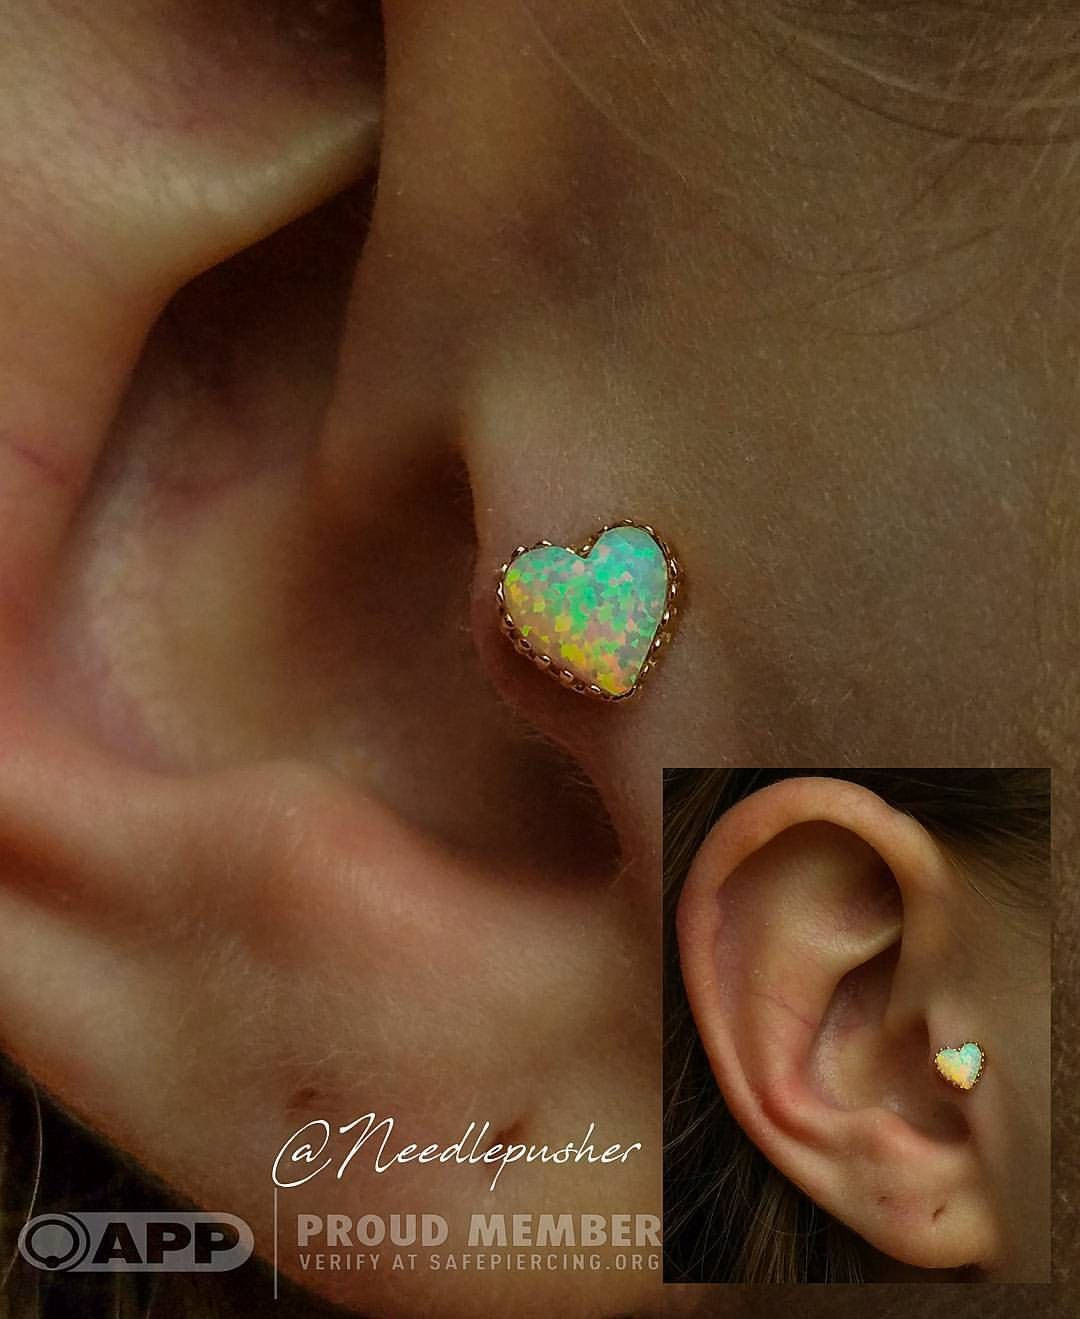 Fresh tragus piercing using this lovely white opal heart from @anatometalinc for the awesome Katie! (Disclaimer it is a white opal the light was just working against me and caused it to look yellow) #traguspiercings #piercedears #cartilagepiercings...